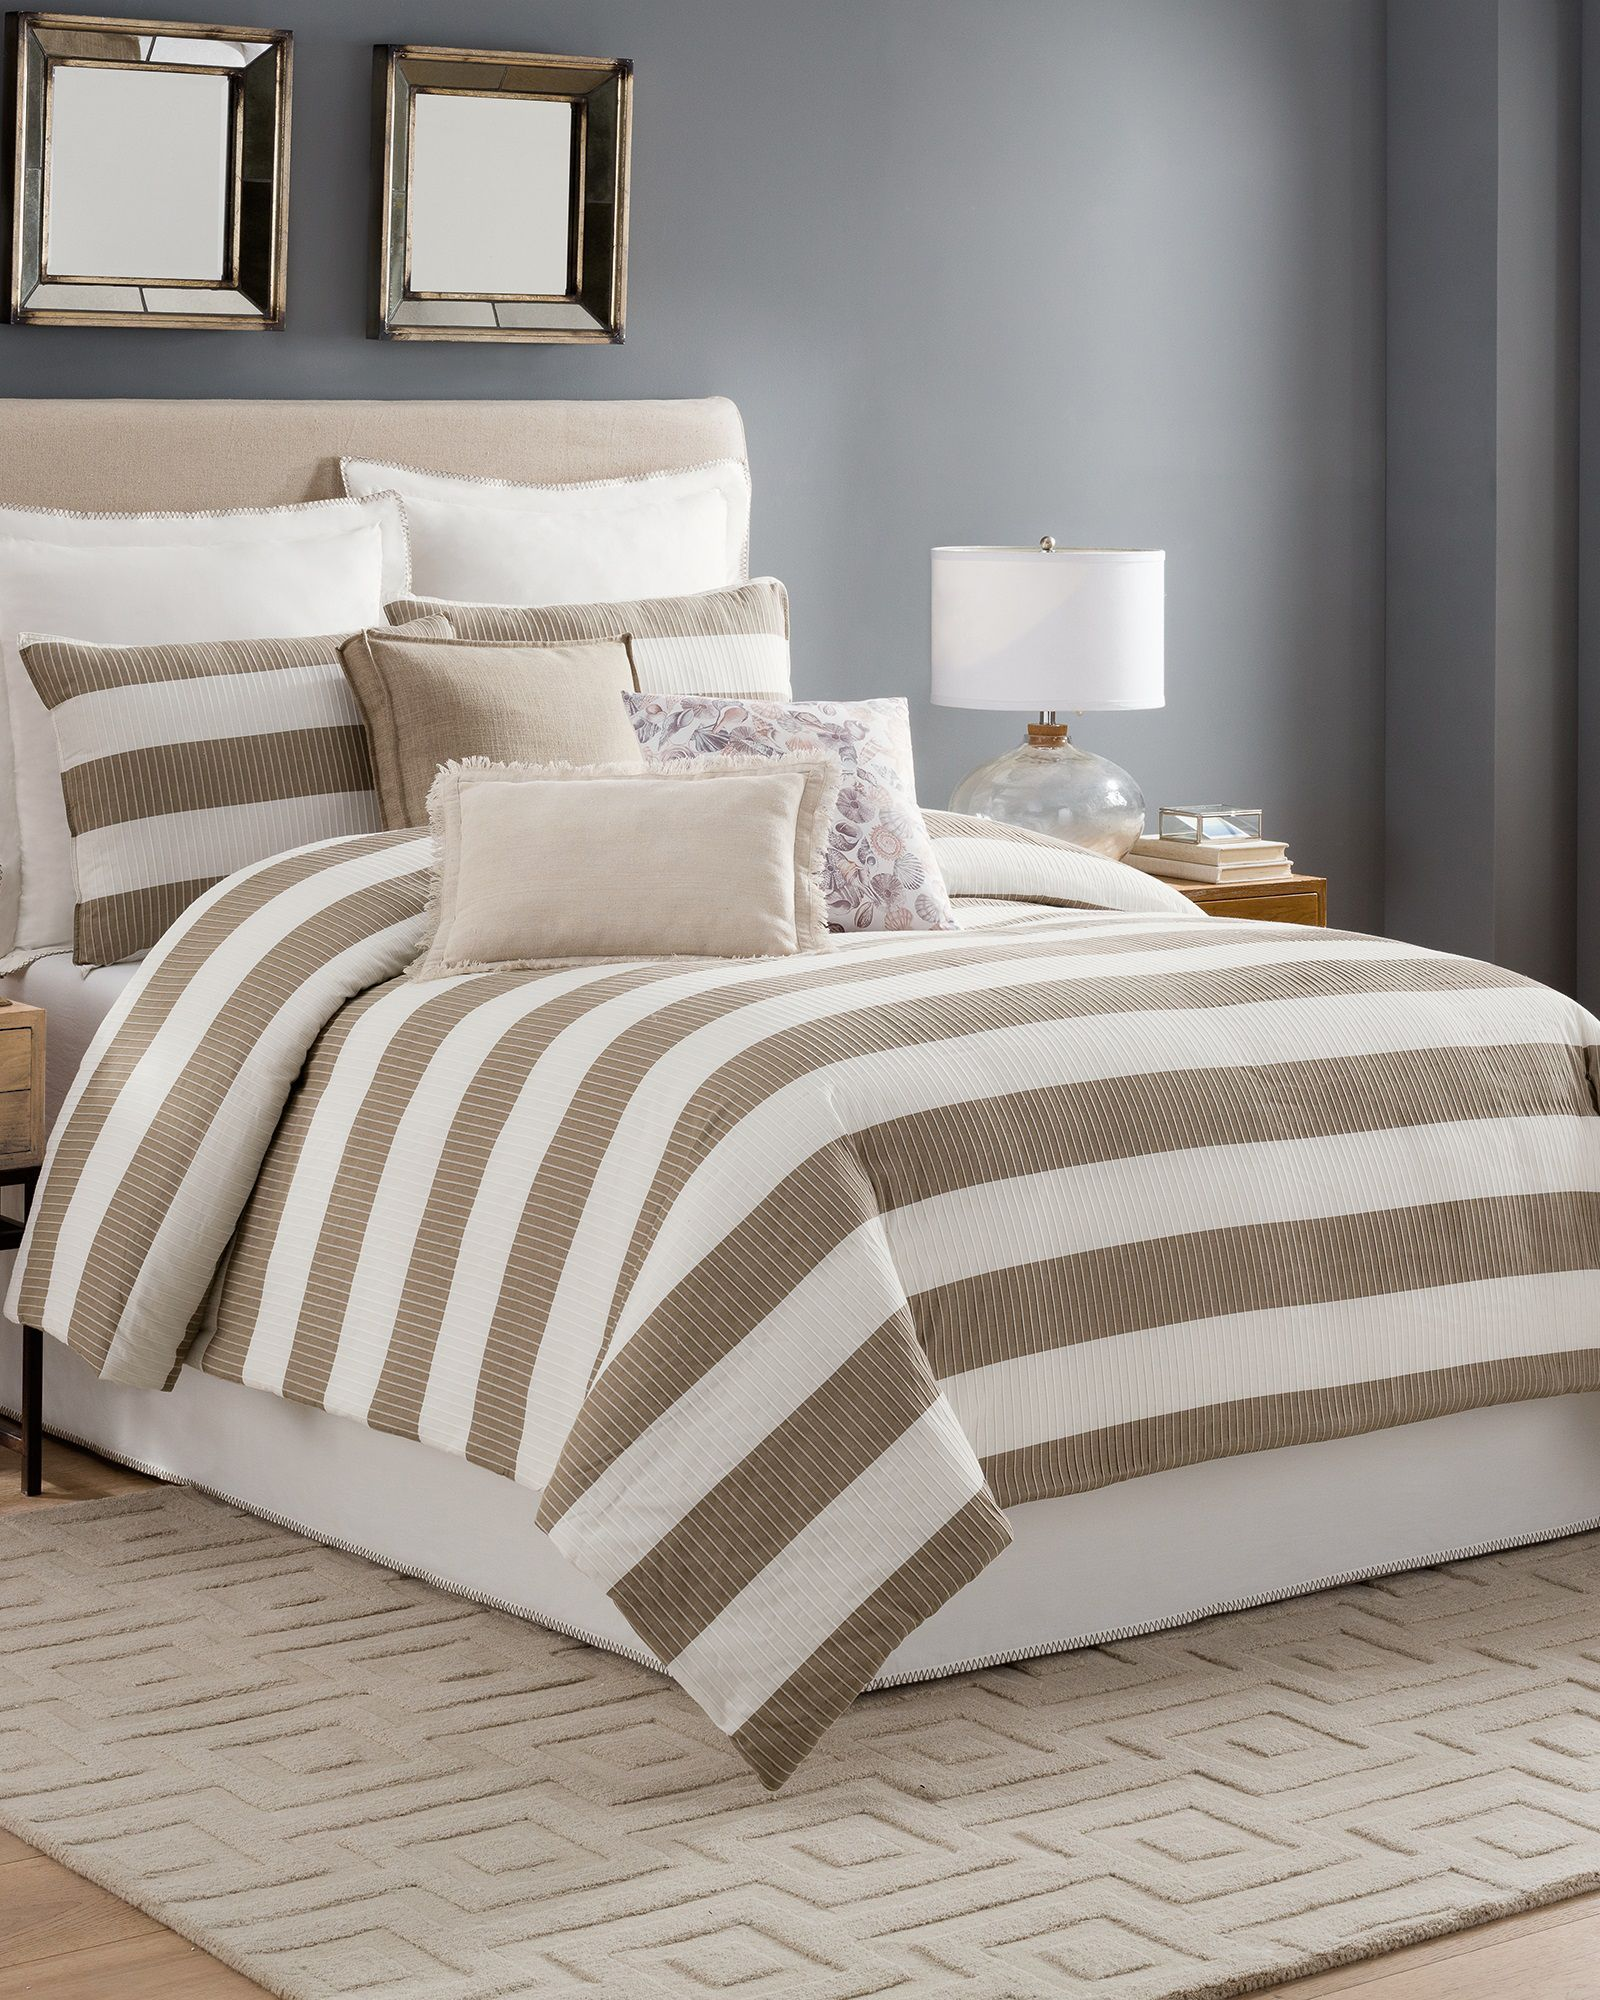 Taupe Striped Queen Comforter Set | *Home & Garden* in 2019 ...